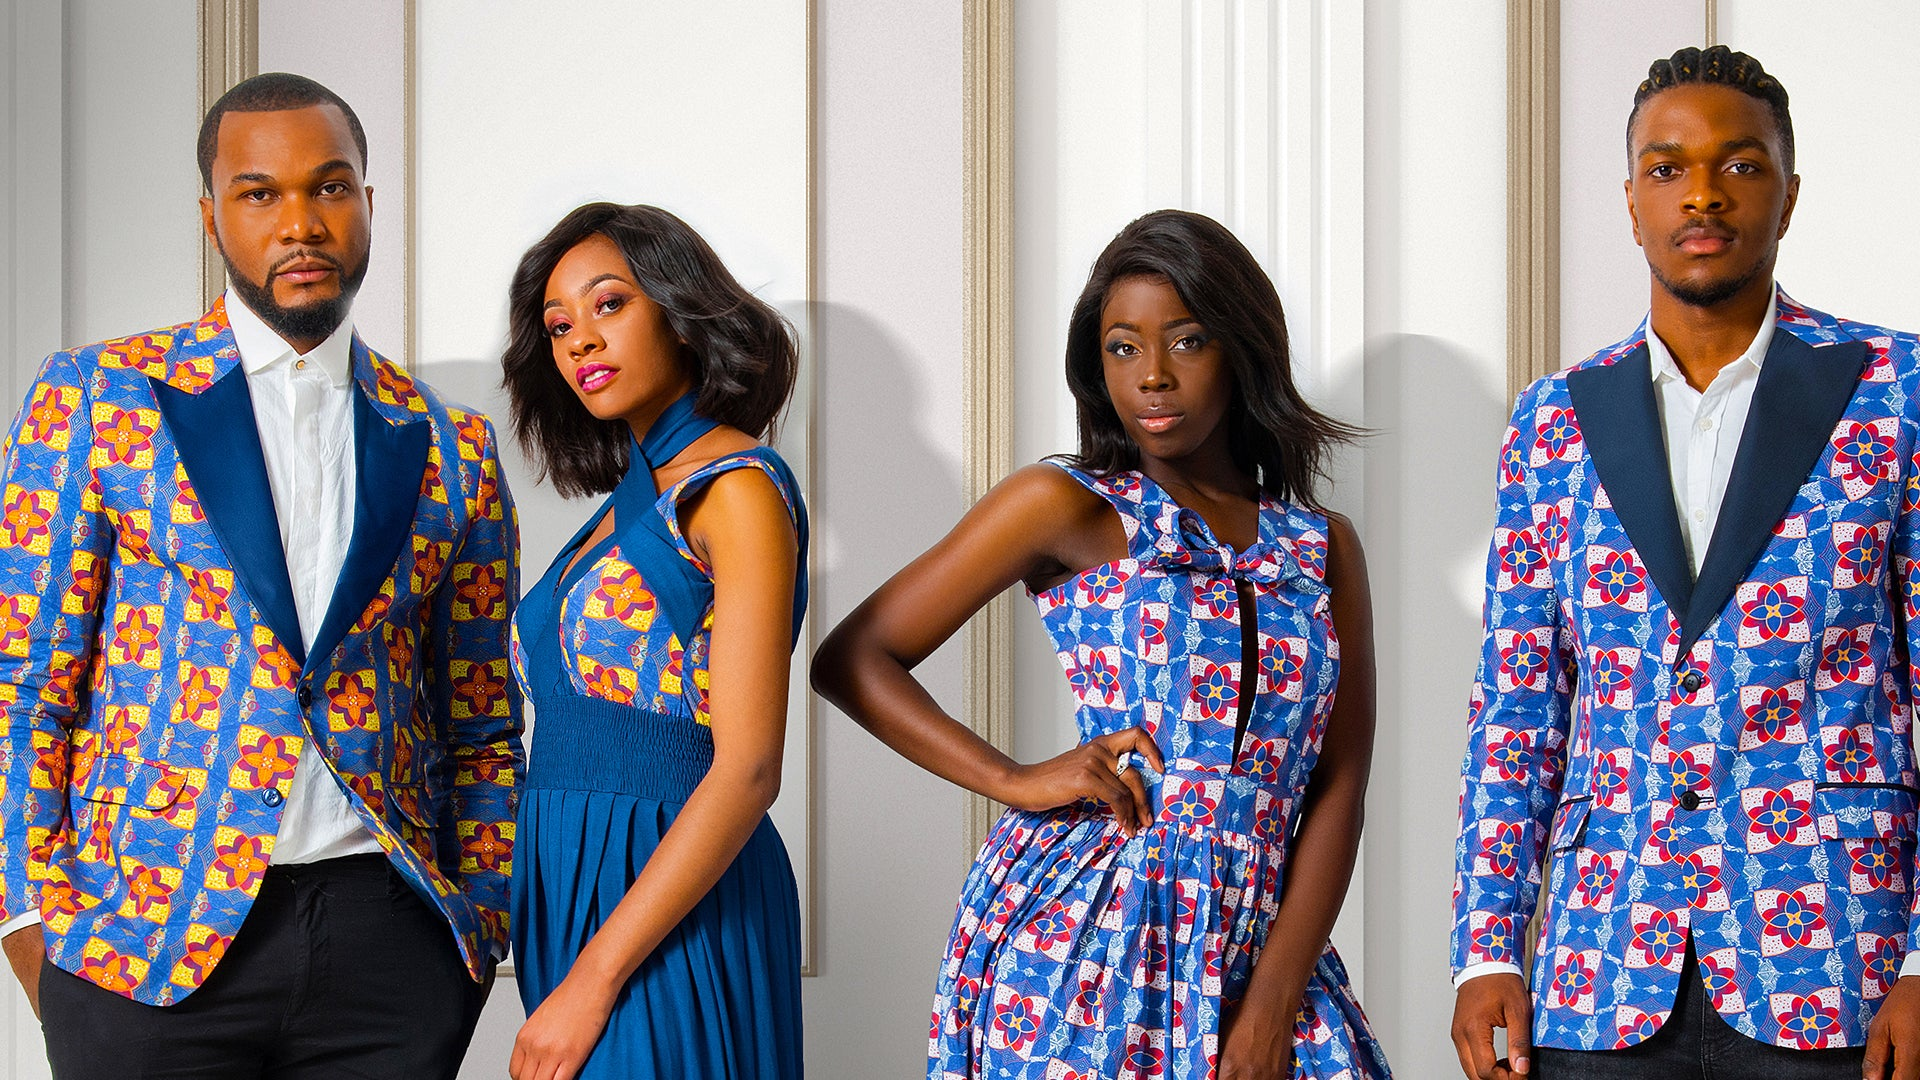 Buy African Clothing in African Prints